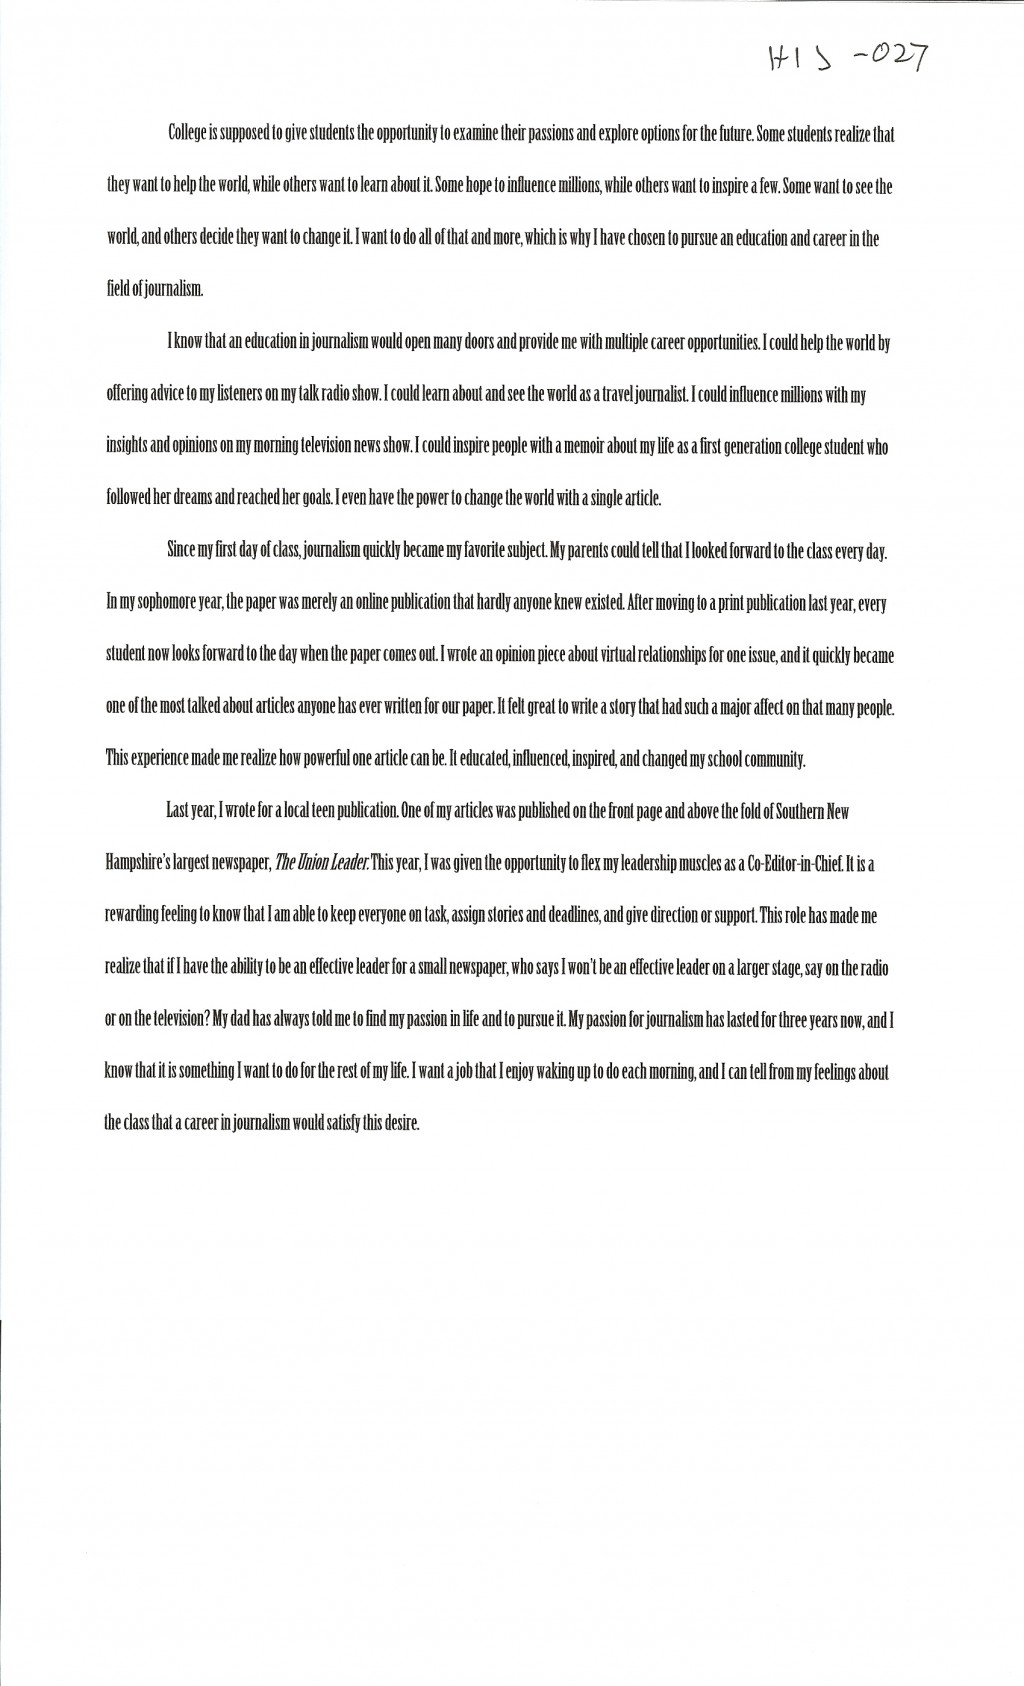 006 Essay Example Alexa Serrecchia Exceptional Fitness Personal Topics Health And Conclusion Large